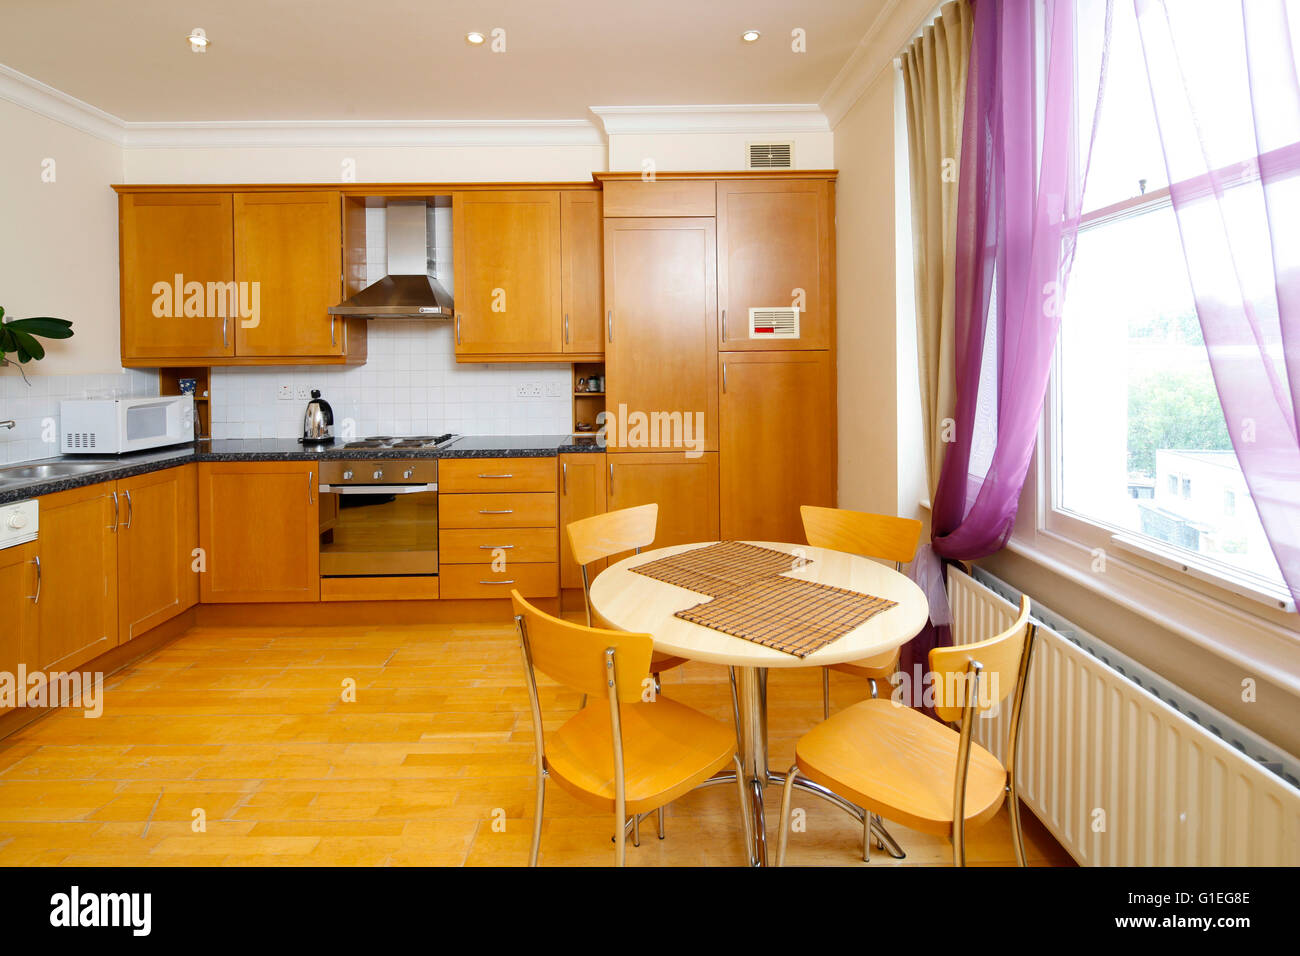 Belsize Lane, Hampstead. View of a kitchen with wood cabinets and dining table. Traditional layout. Stock Photo